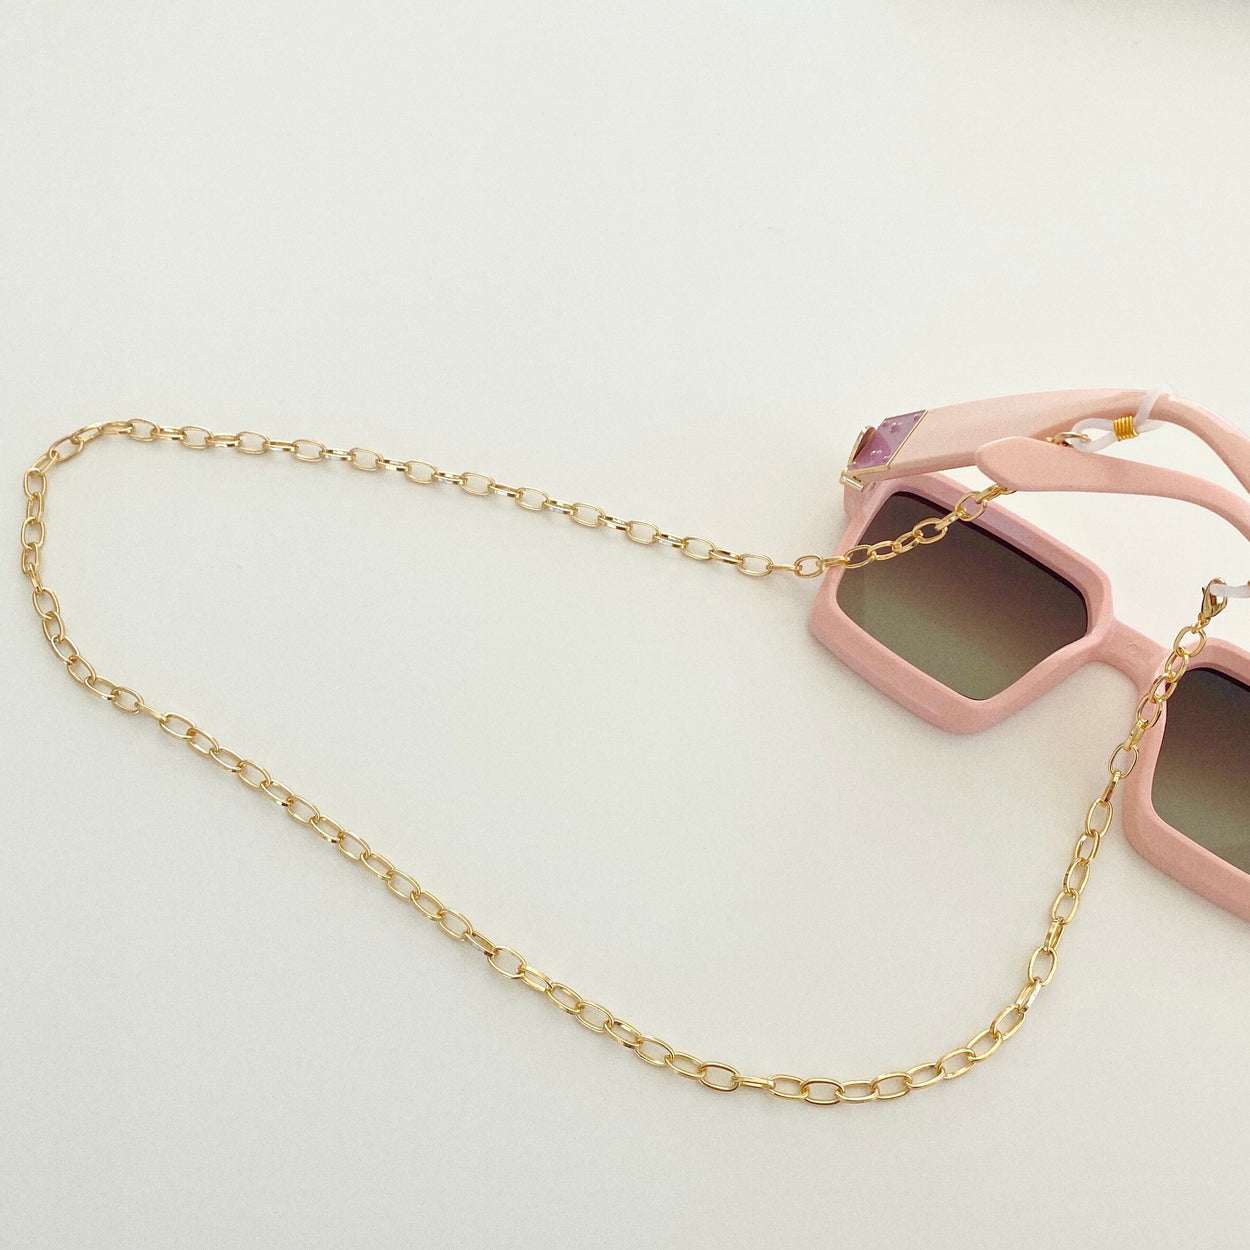 Eyewear & Mask Chain